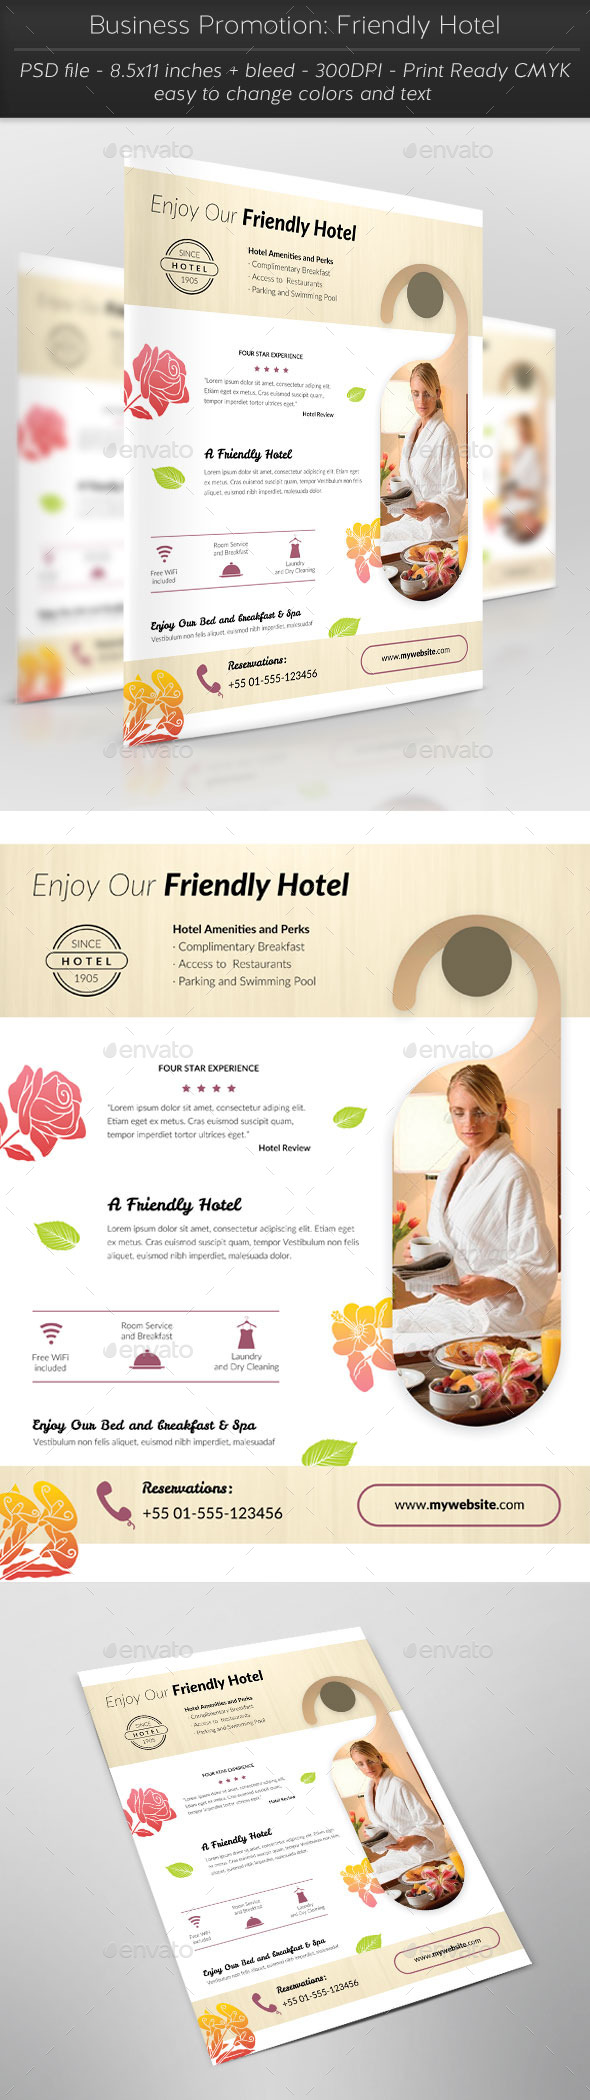 GraphicRiver Business Promotion Friendly Hotel 11354762